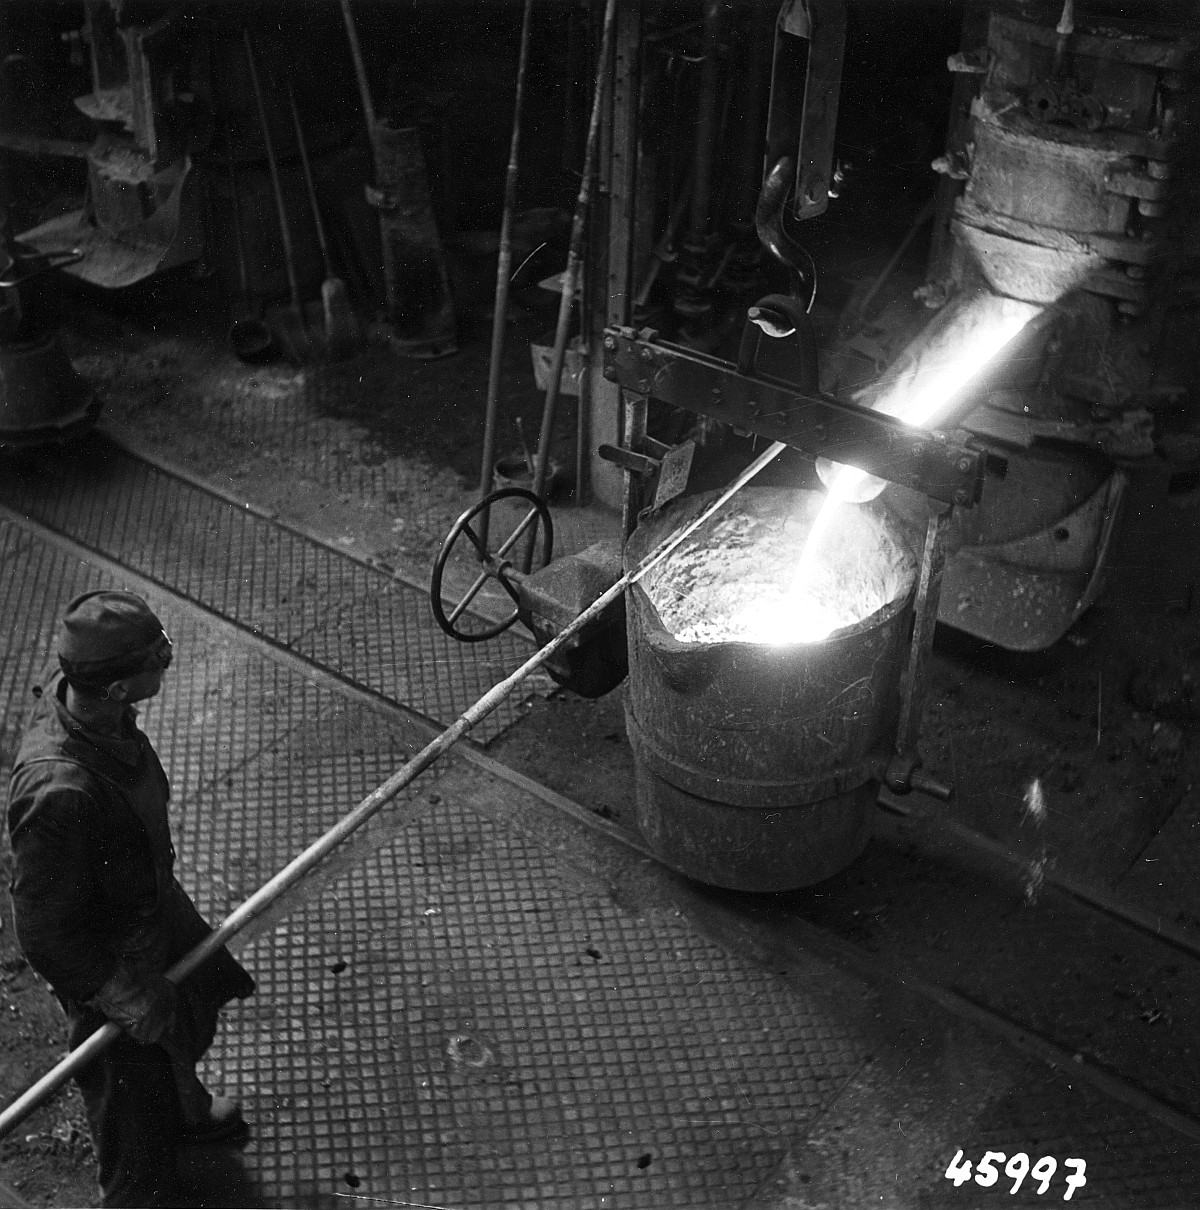 GFA 12/45997: Reportage casting process in malleable casting